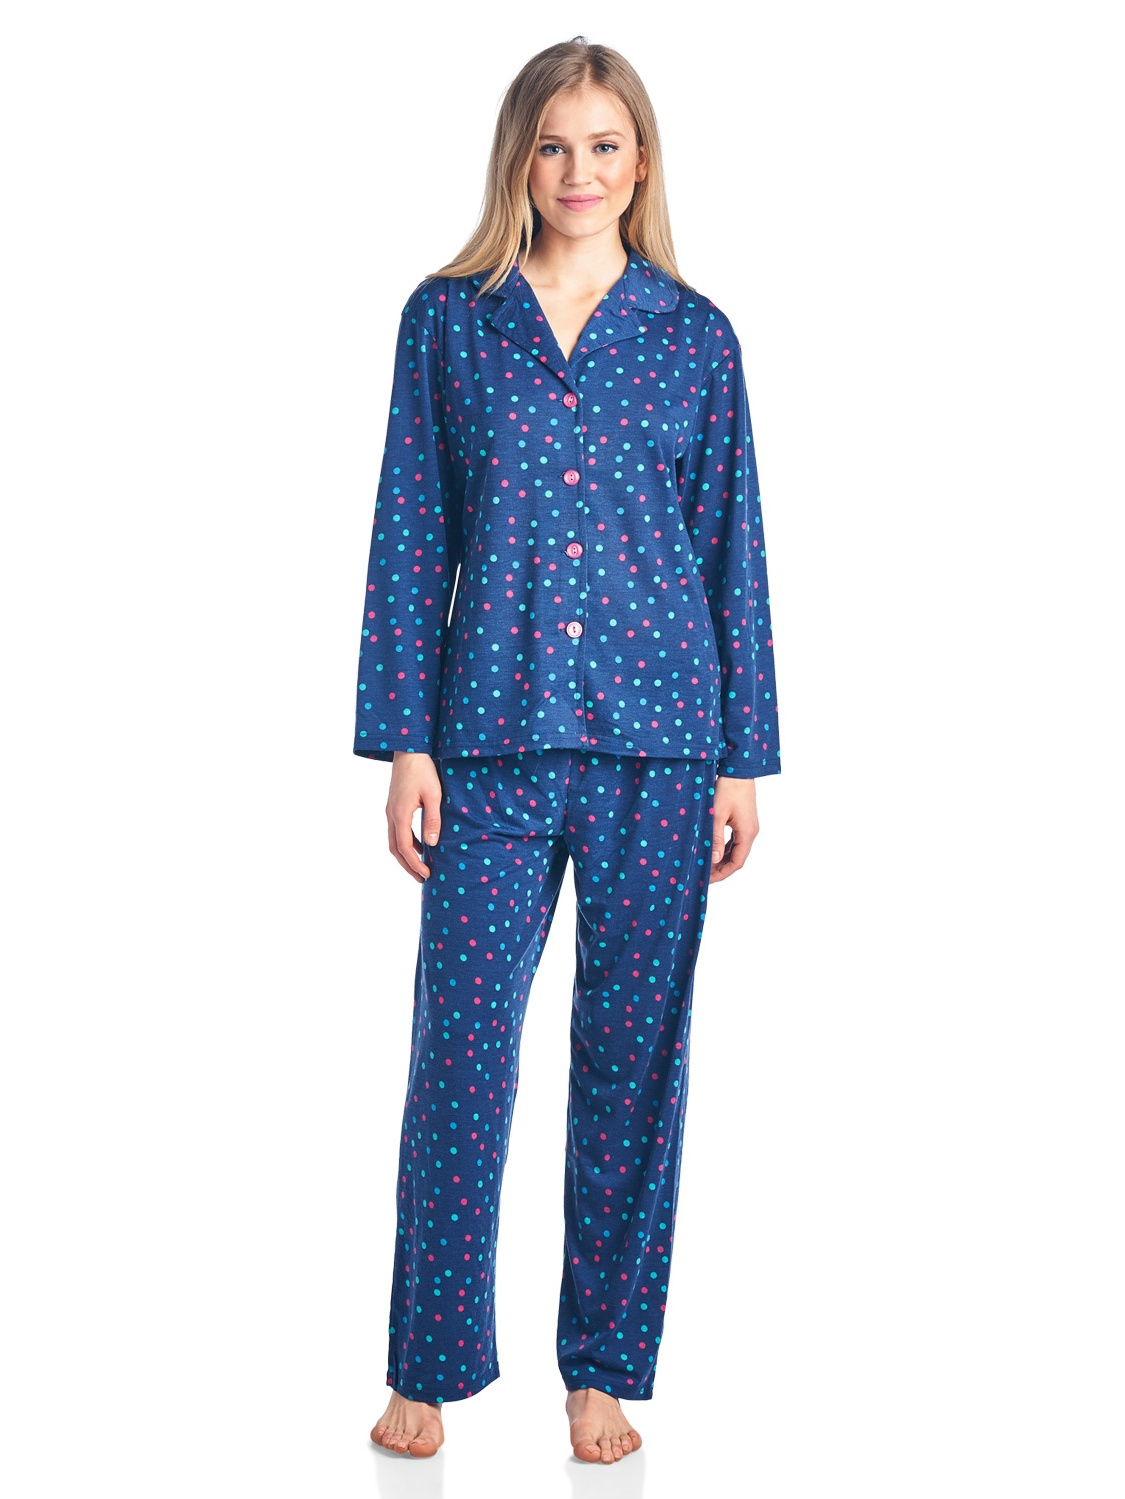 87f52766 BHPJ By Bedhead Pajamas Women's Brushed Back Soft Knit Pajama Set - Navy  Sweater Dog